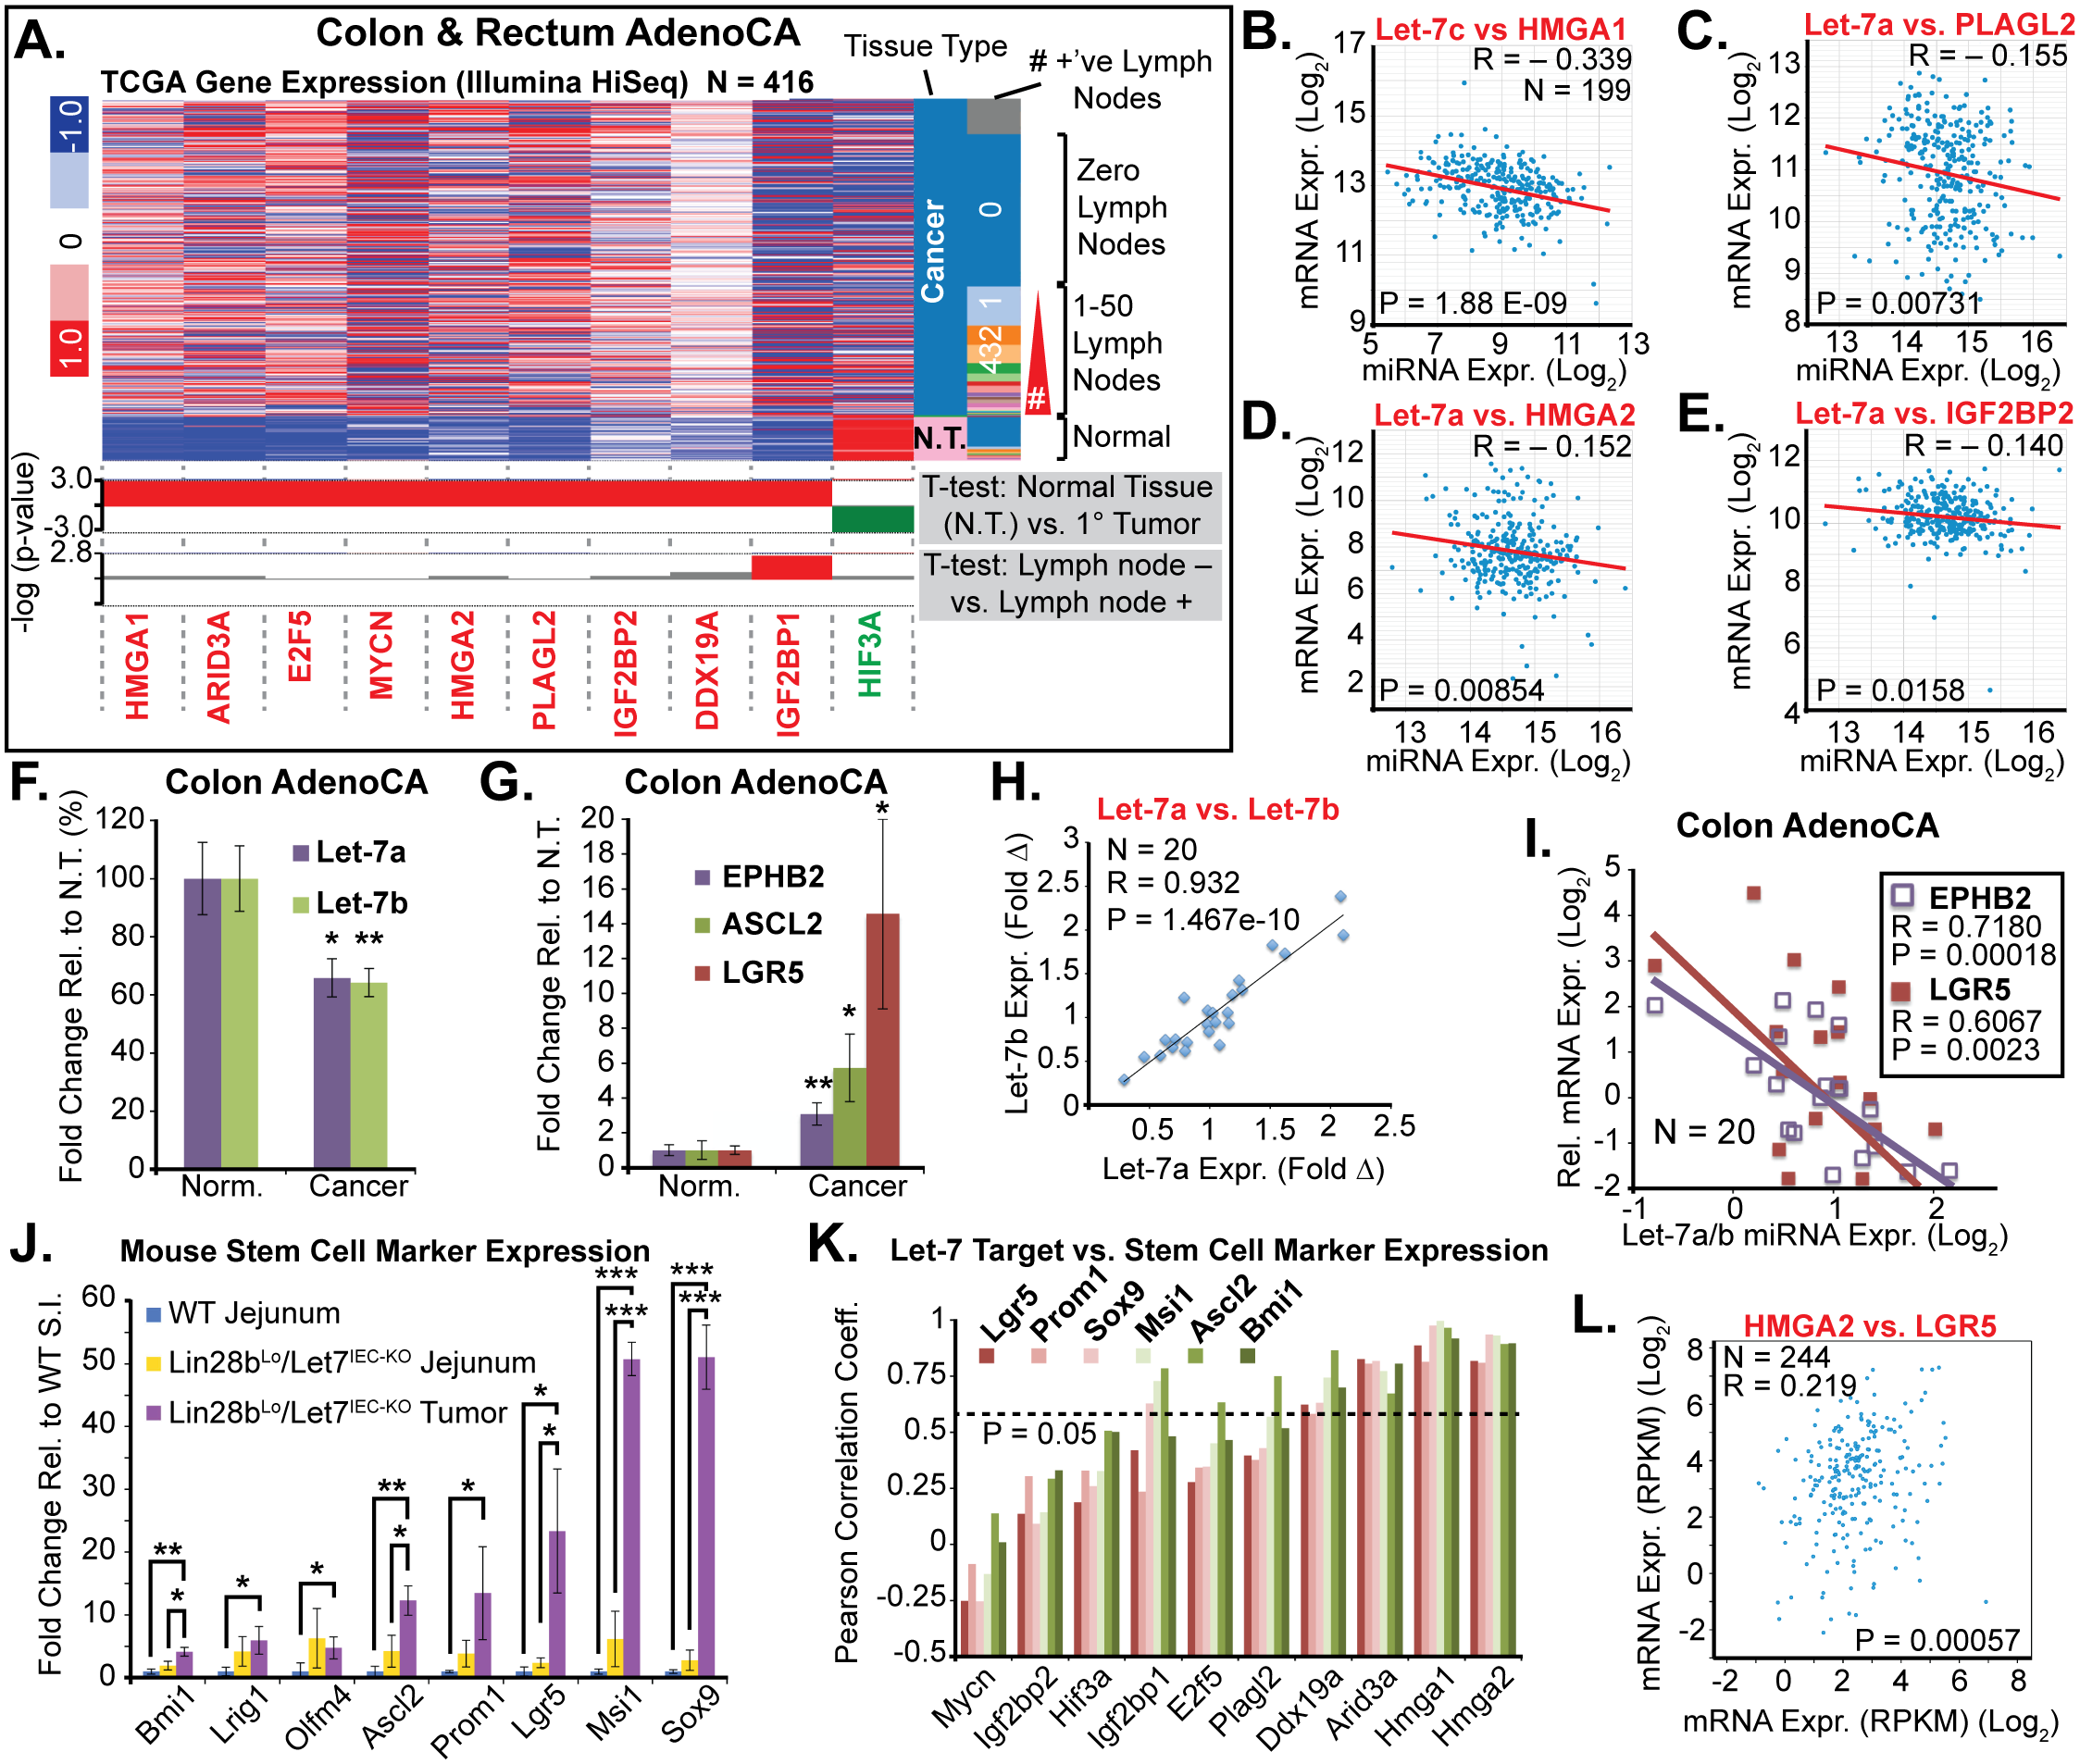 Let-7 and HMGA2 are associated with a stem cell signature in intestinal adenocarcinomas.